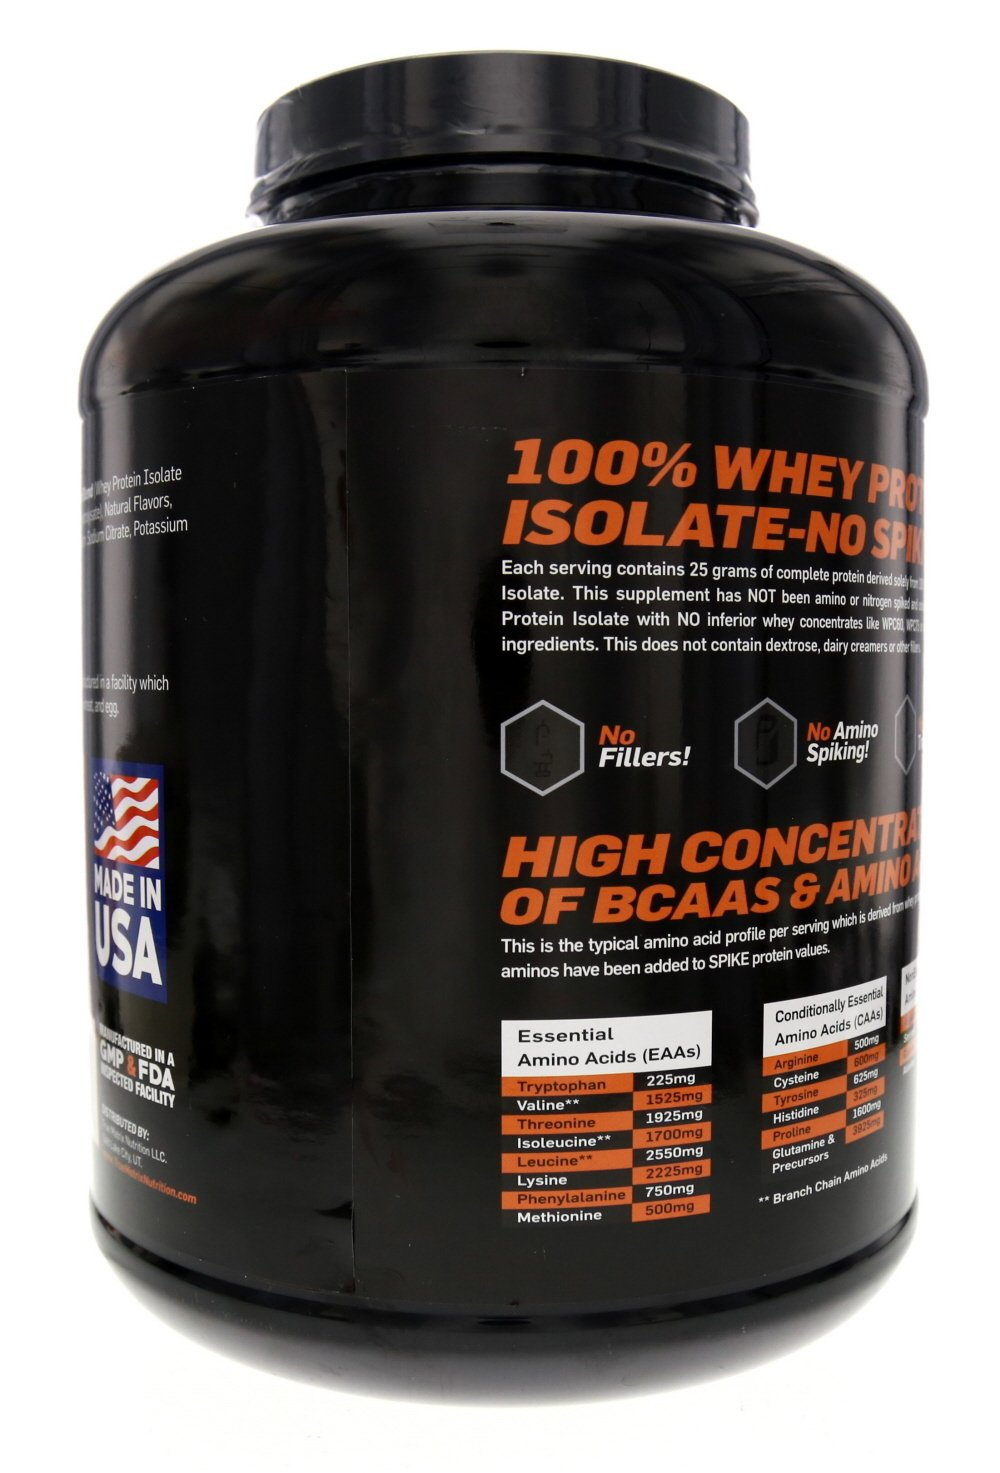 ISO-Clear 100% Hydrolyzed Whey Protein - High Concentration of BCAA - No  Lactose or Trans